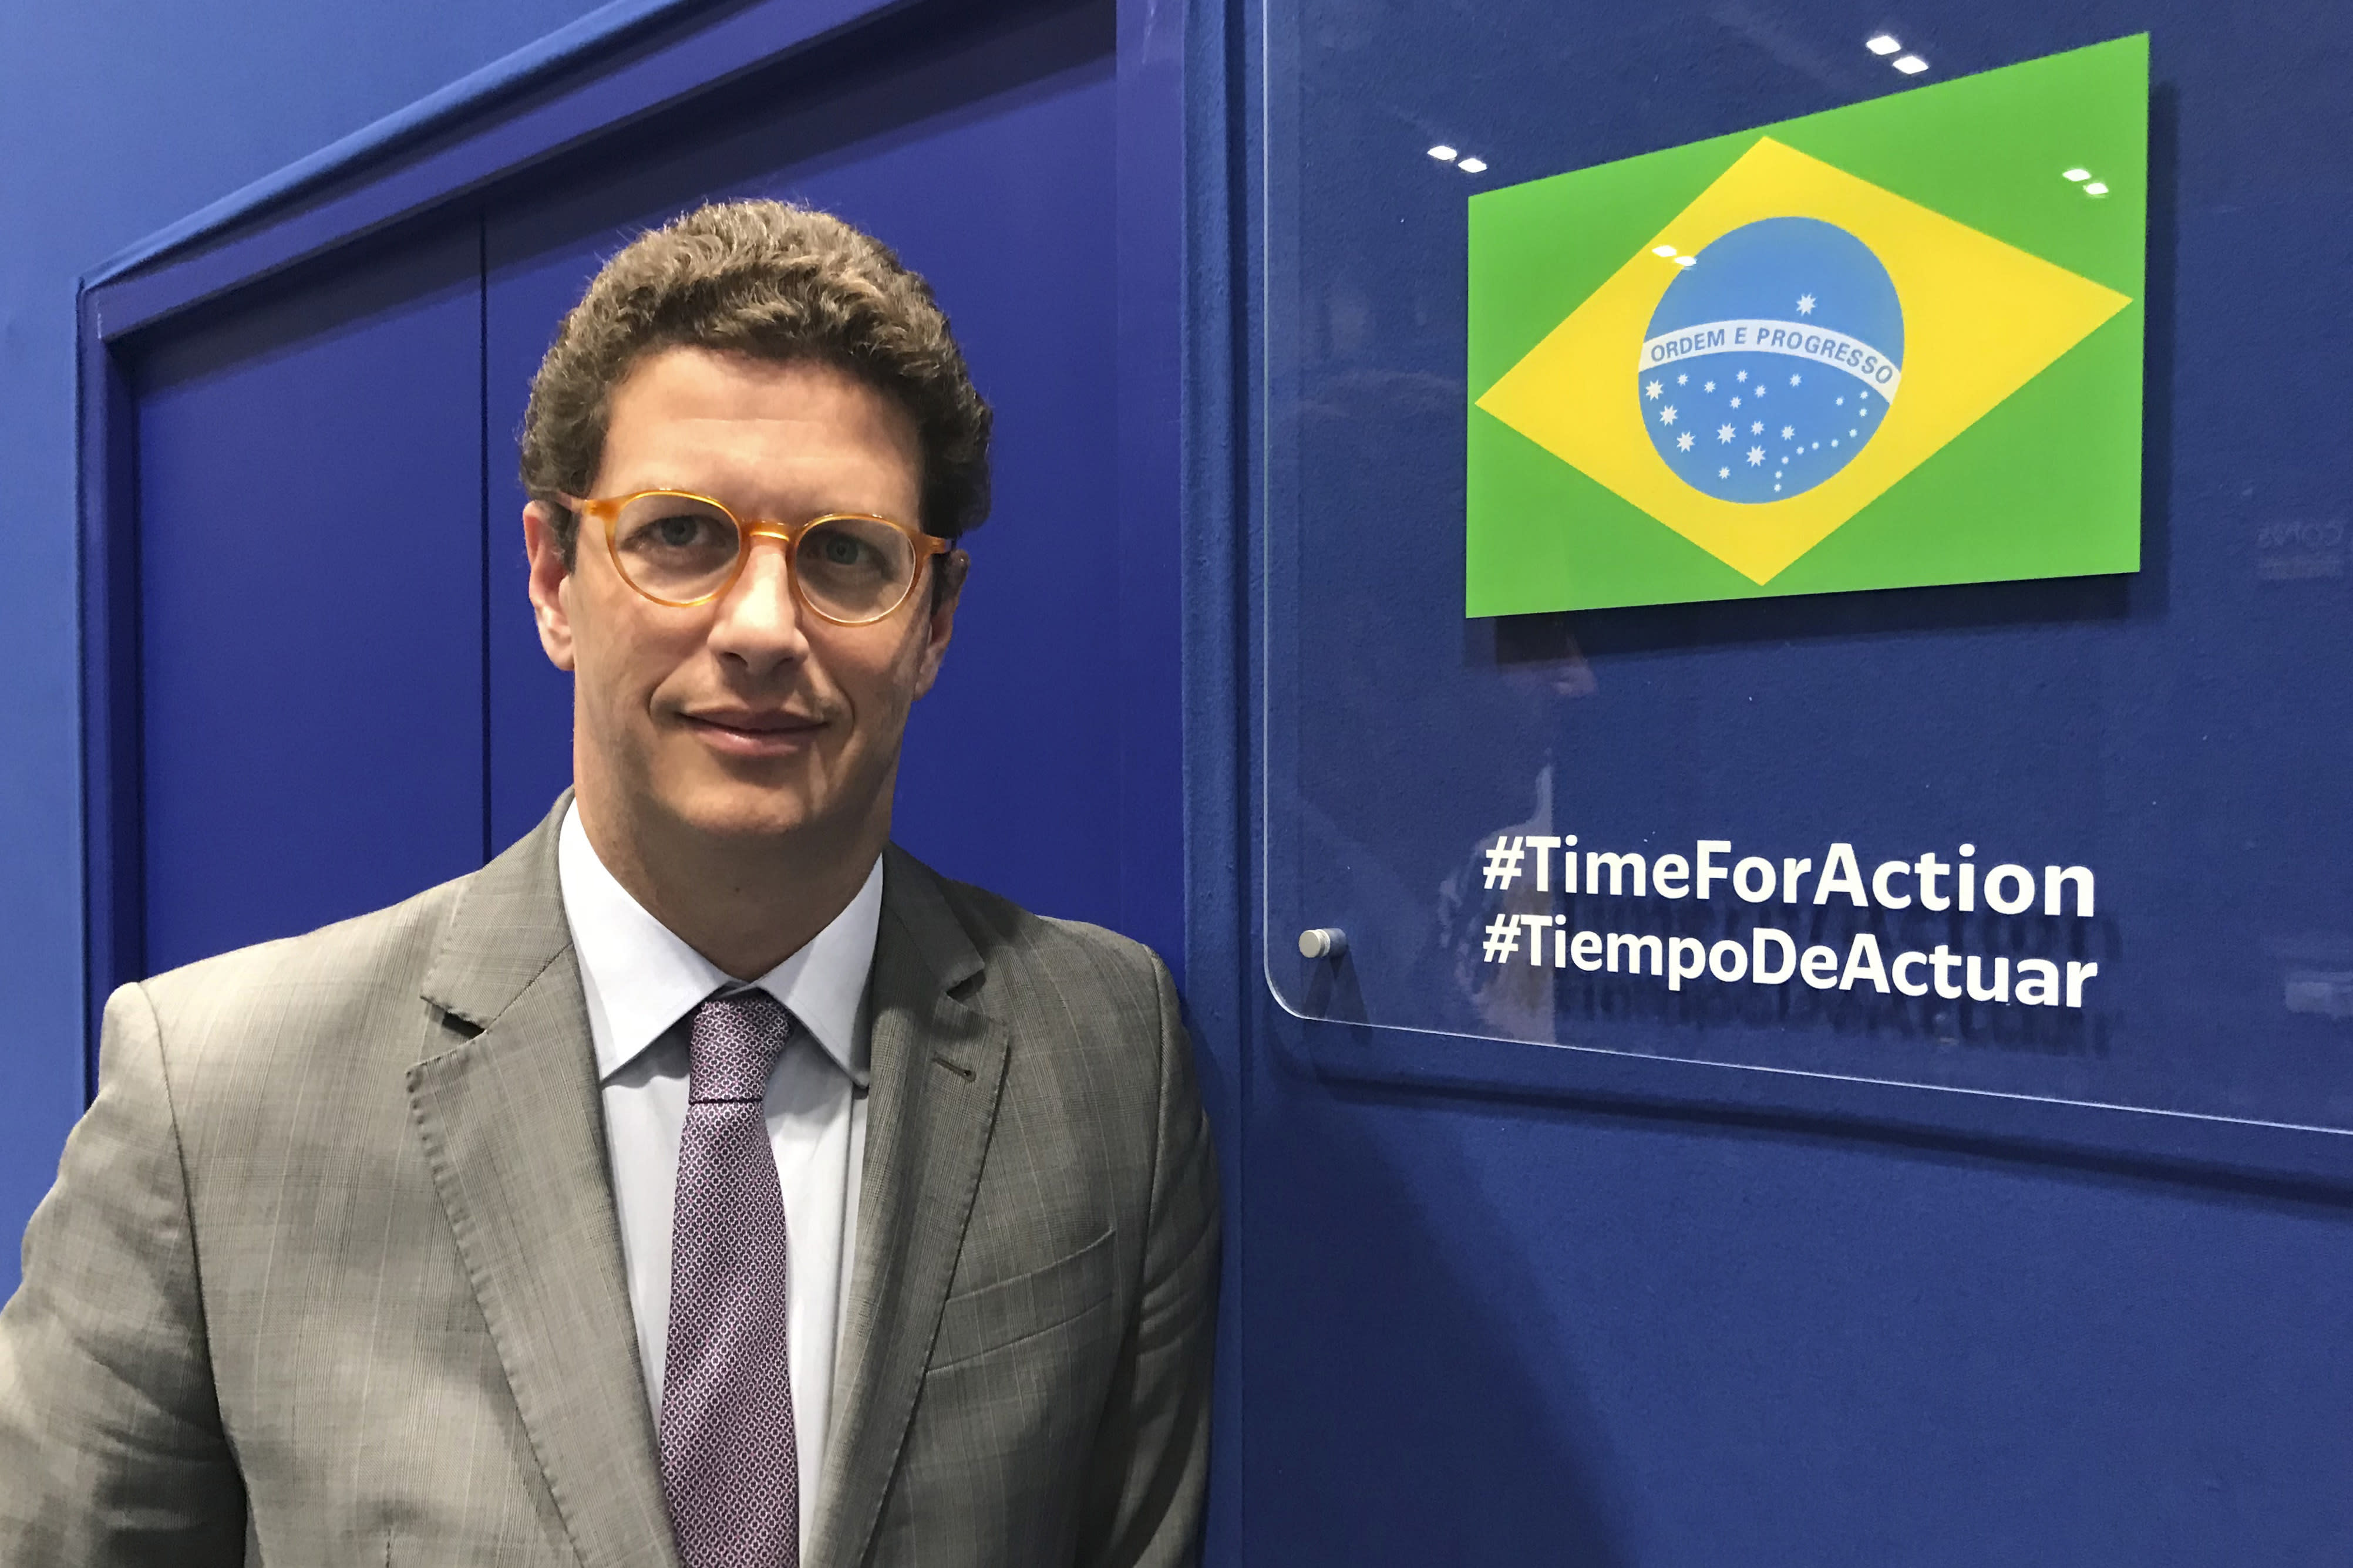 In this photo taken on Saturday Dec. 7, 2019, Brazilian environment Ricardo Salles stands outside the Brazil delegation room at the COP25 U.N. climate talks in Madrid, Spain. Madrid is hosting a two-week global summit aimed at lessening the impact of rising temperatures. (AP Photo/Dorothee Thiesing)